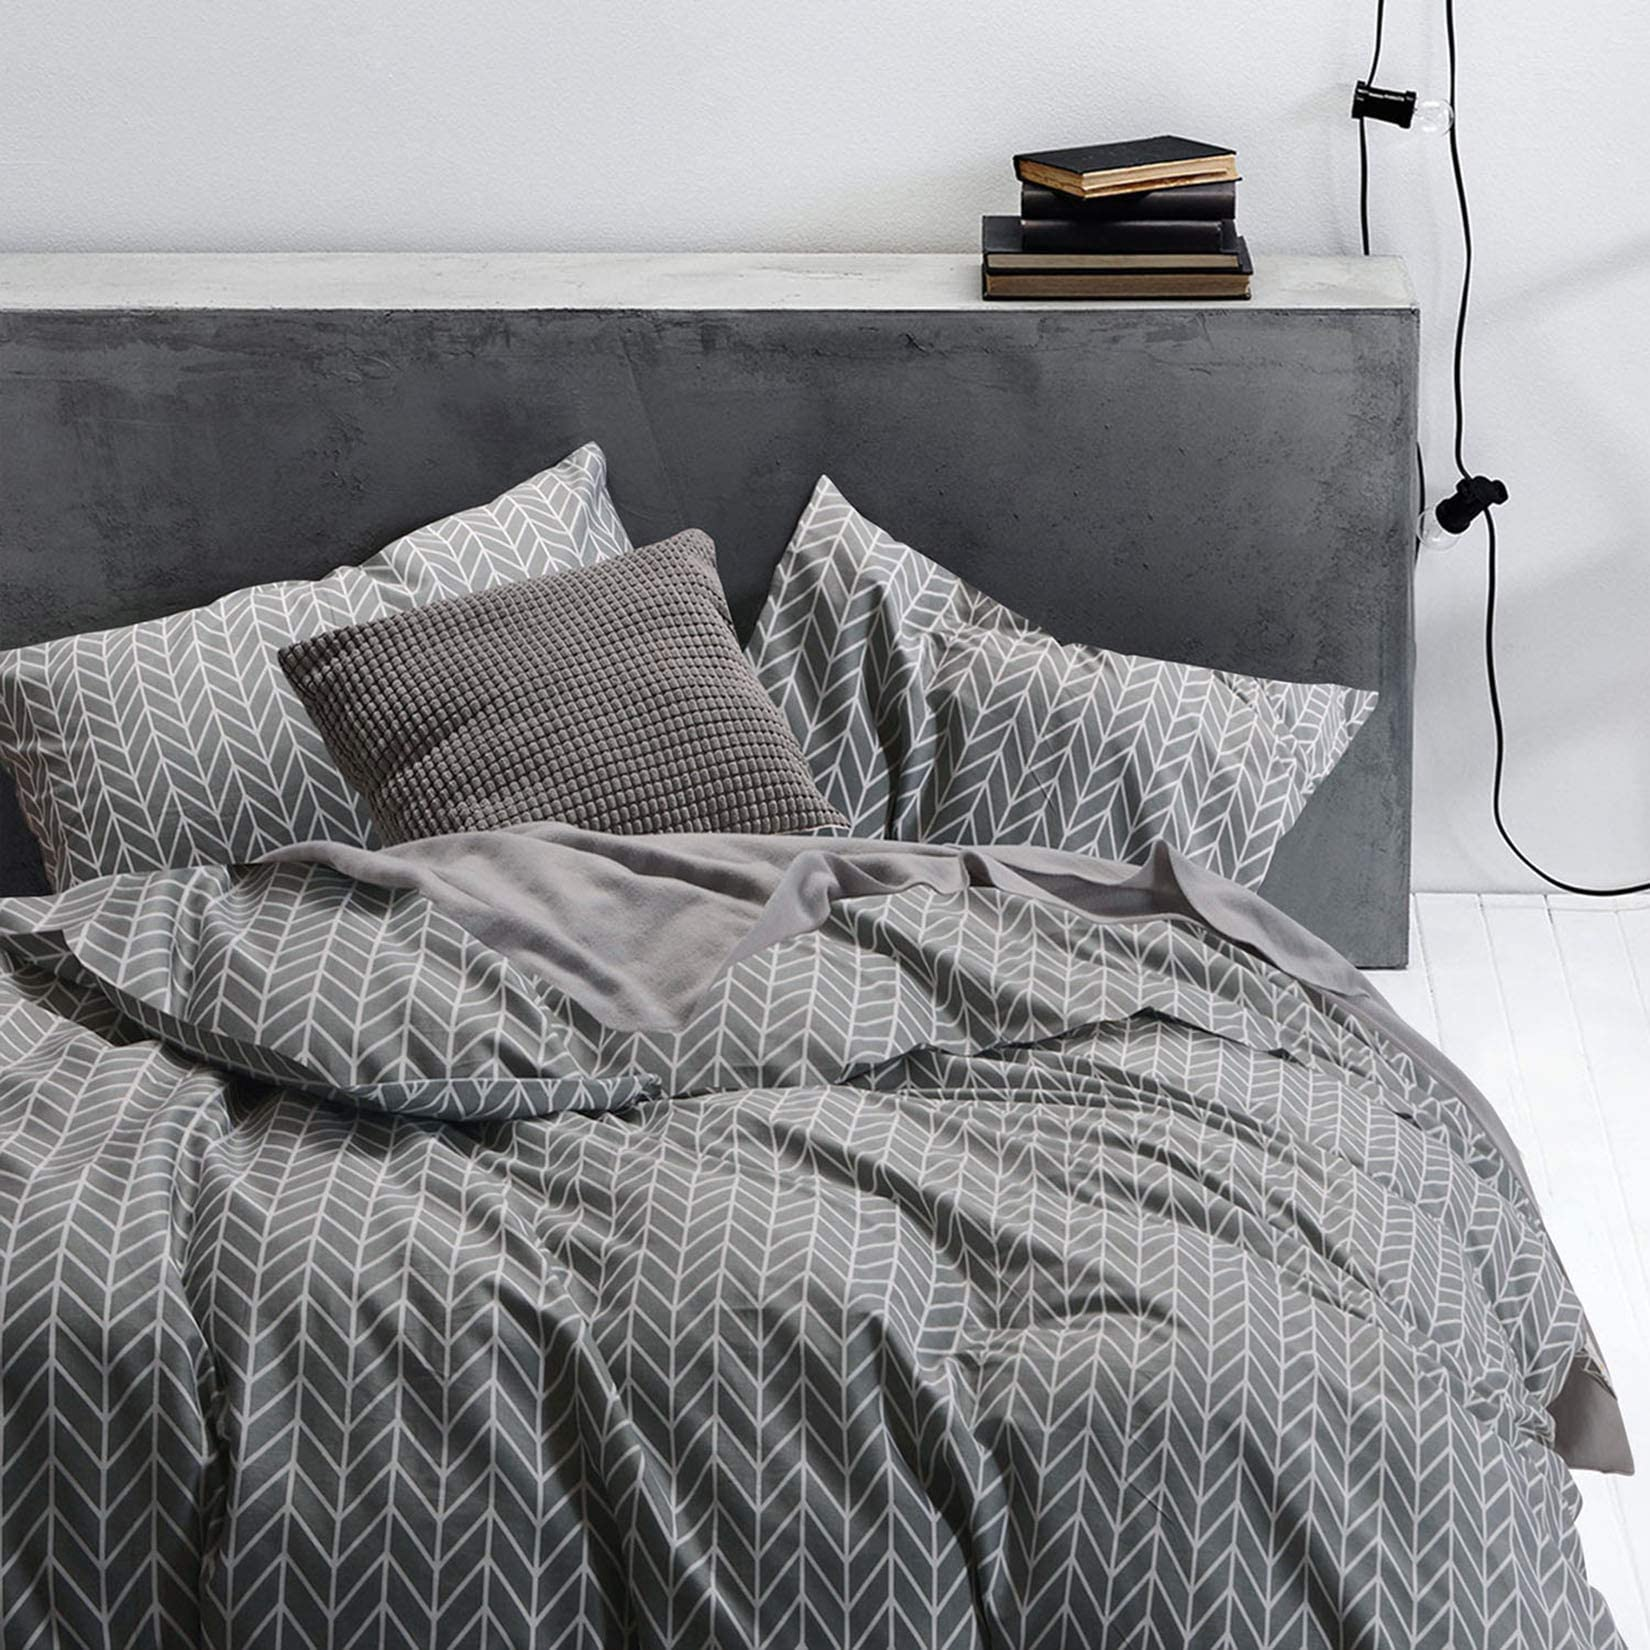 Duvet or Bed cover in floral chevron to brighten up your room and cheer you up